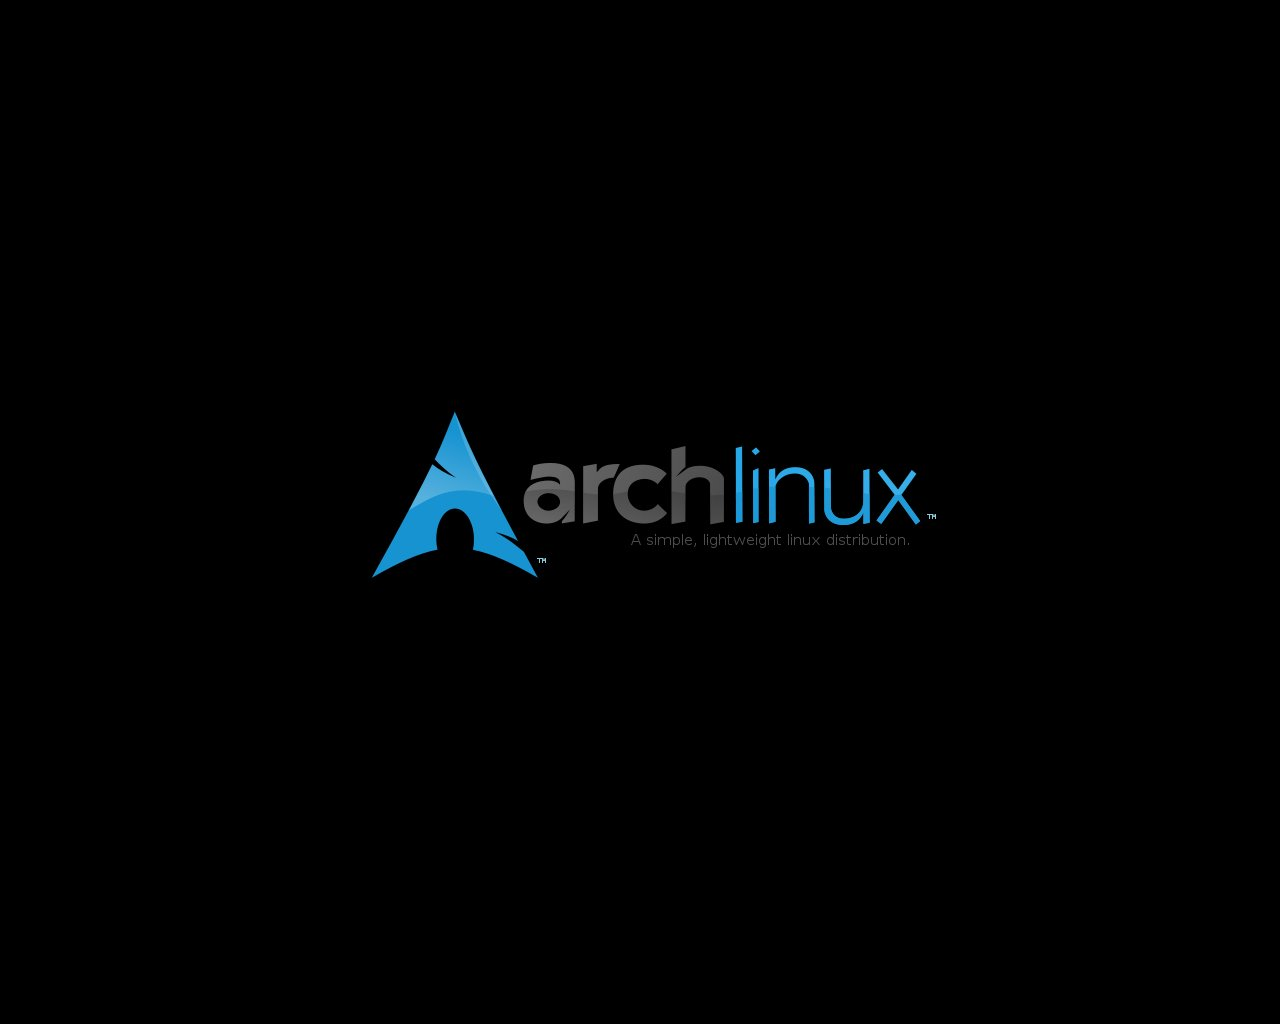 Arch Linux Background Download HD Wallpapers 1280x1024